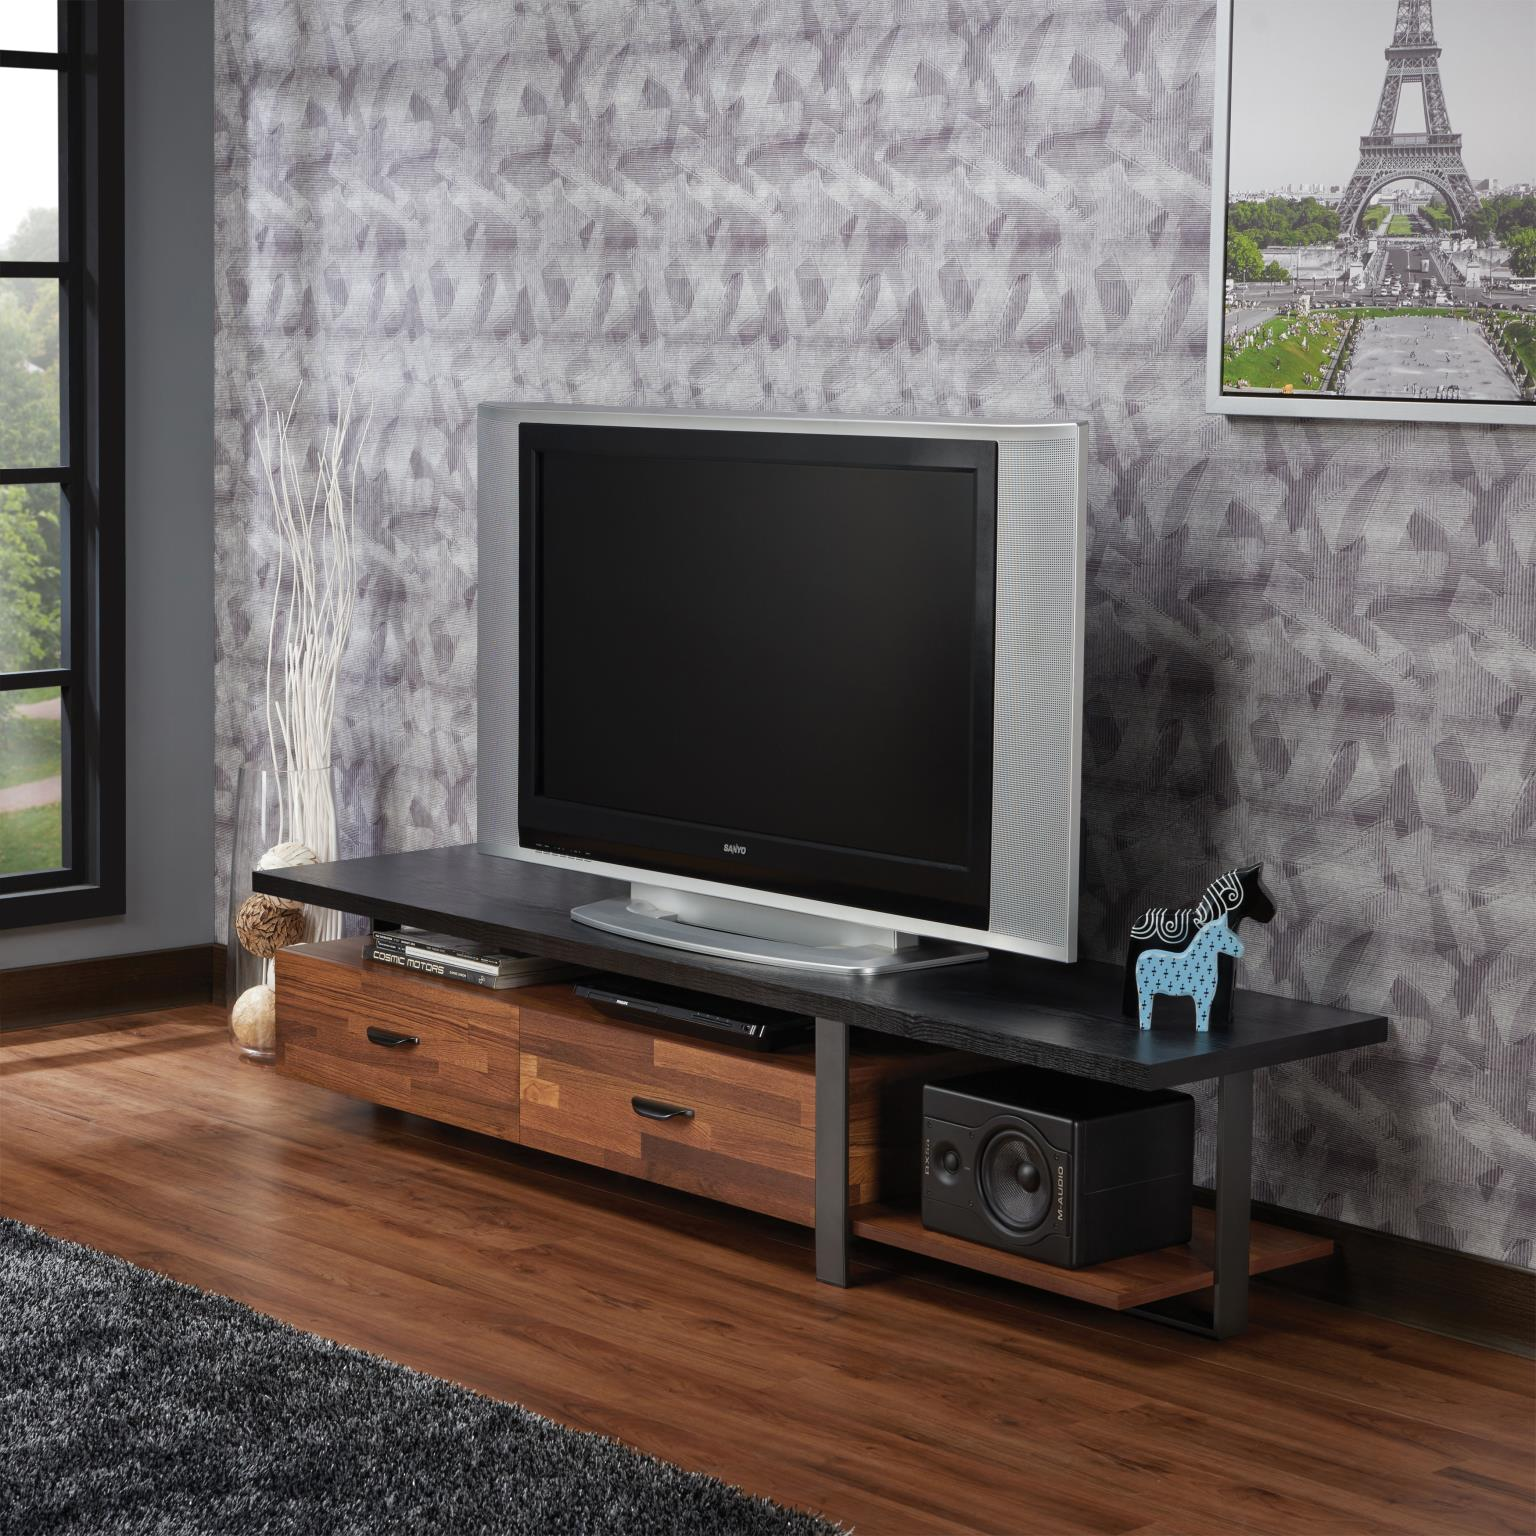 Elling Tv Stand 91235